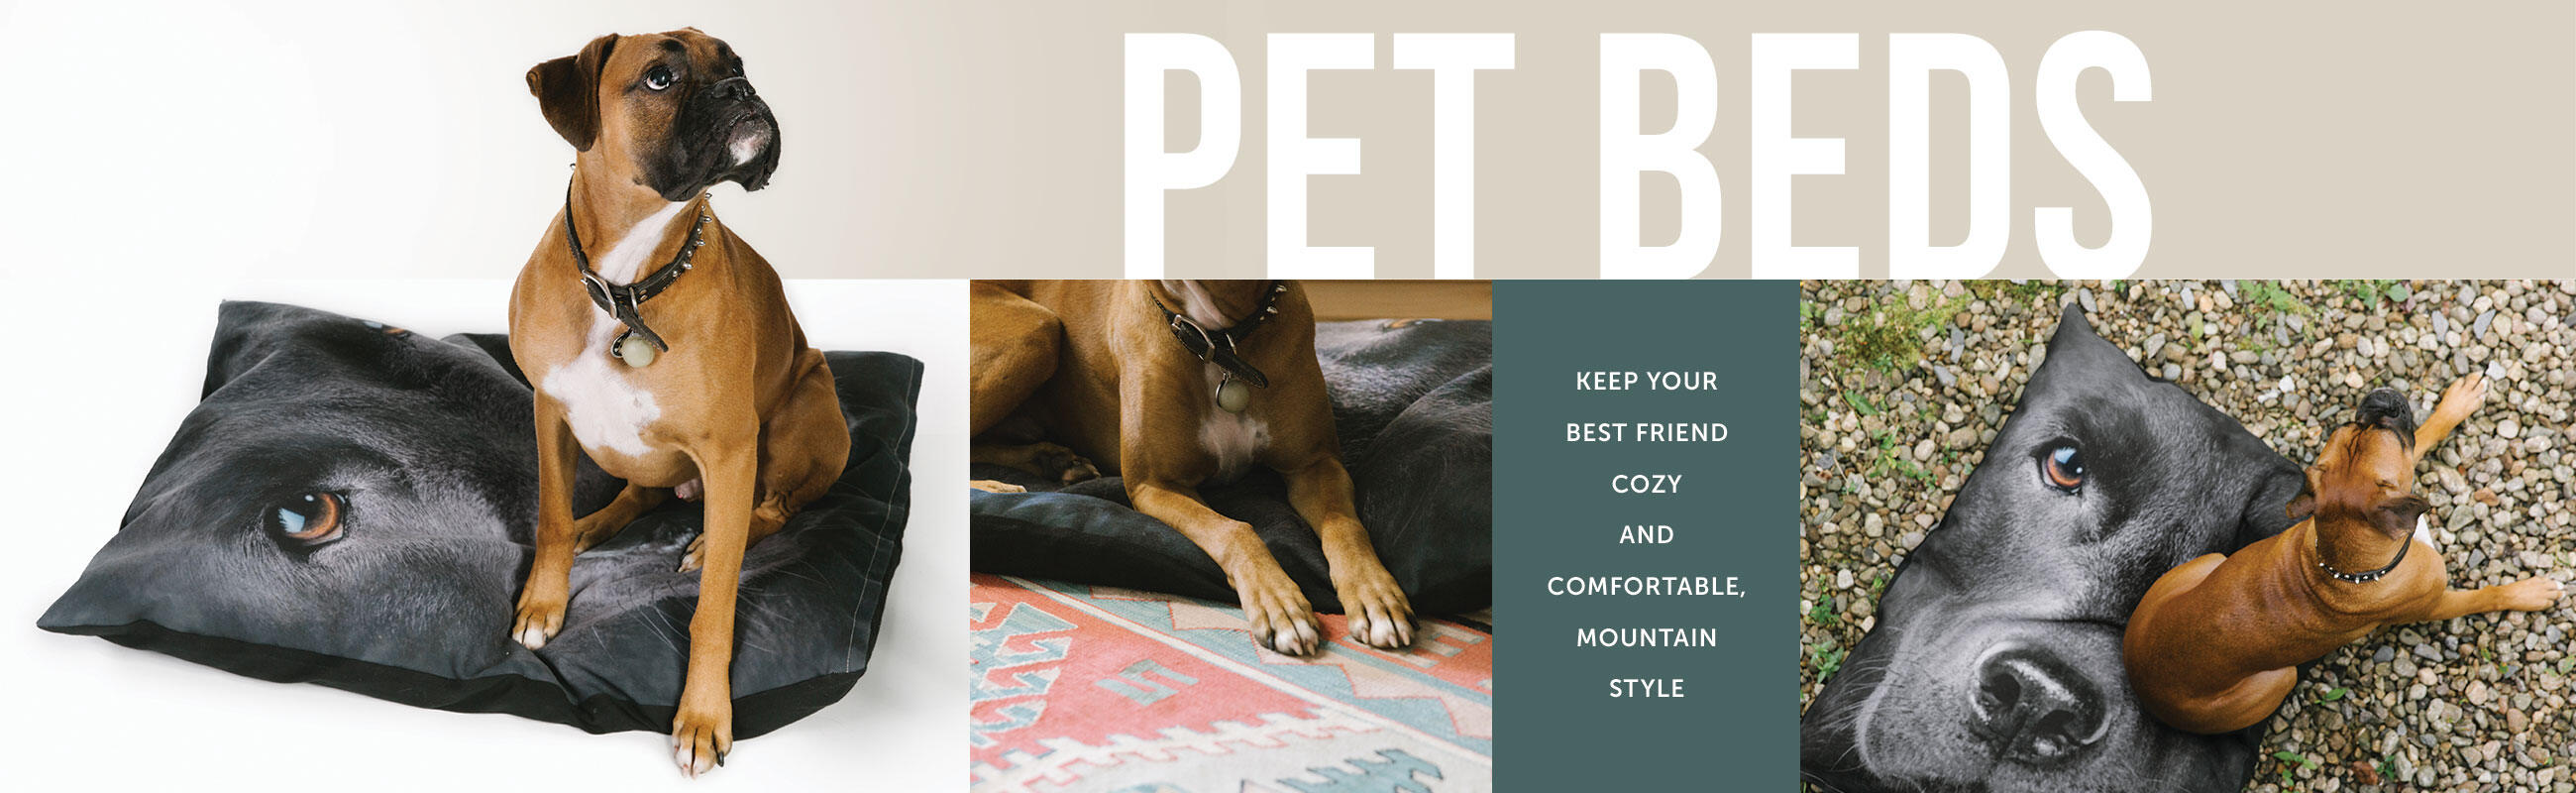 Shop Mountain Pet Beds